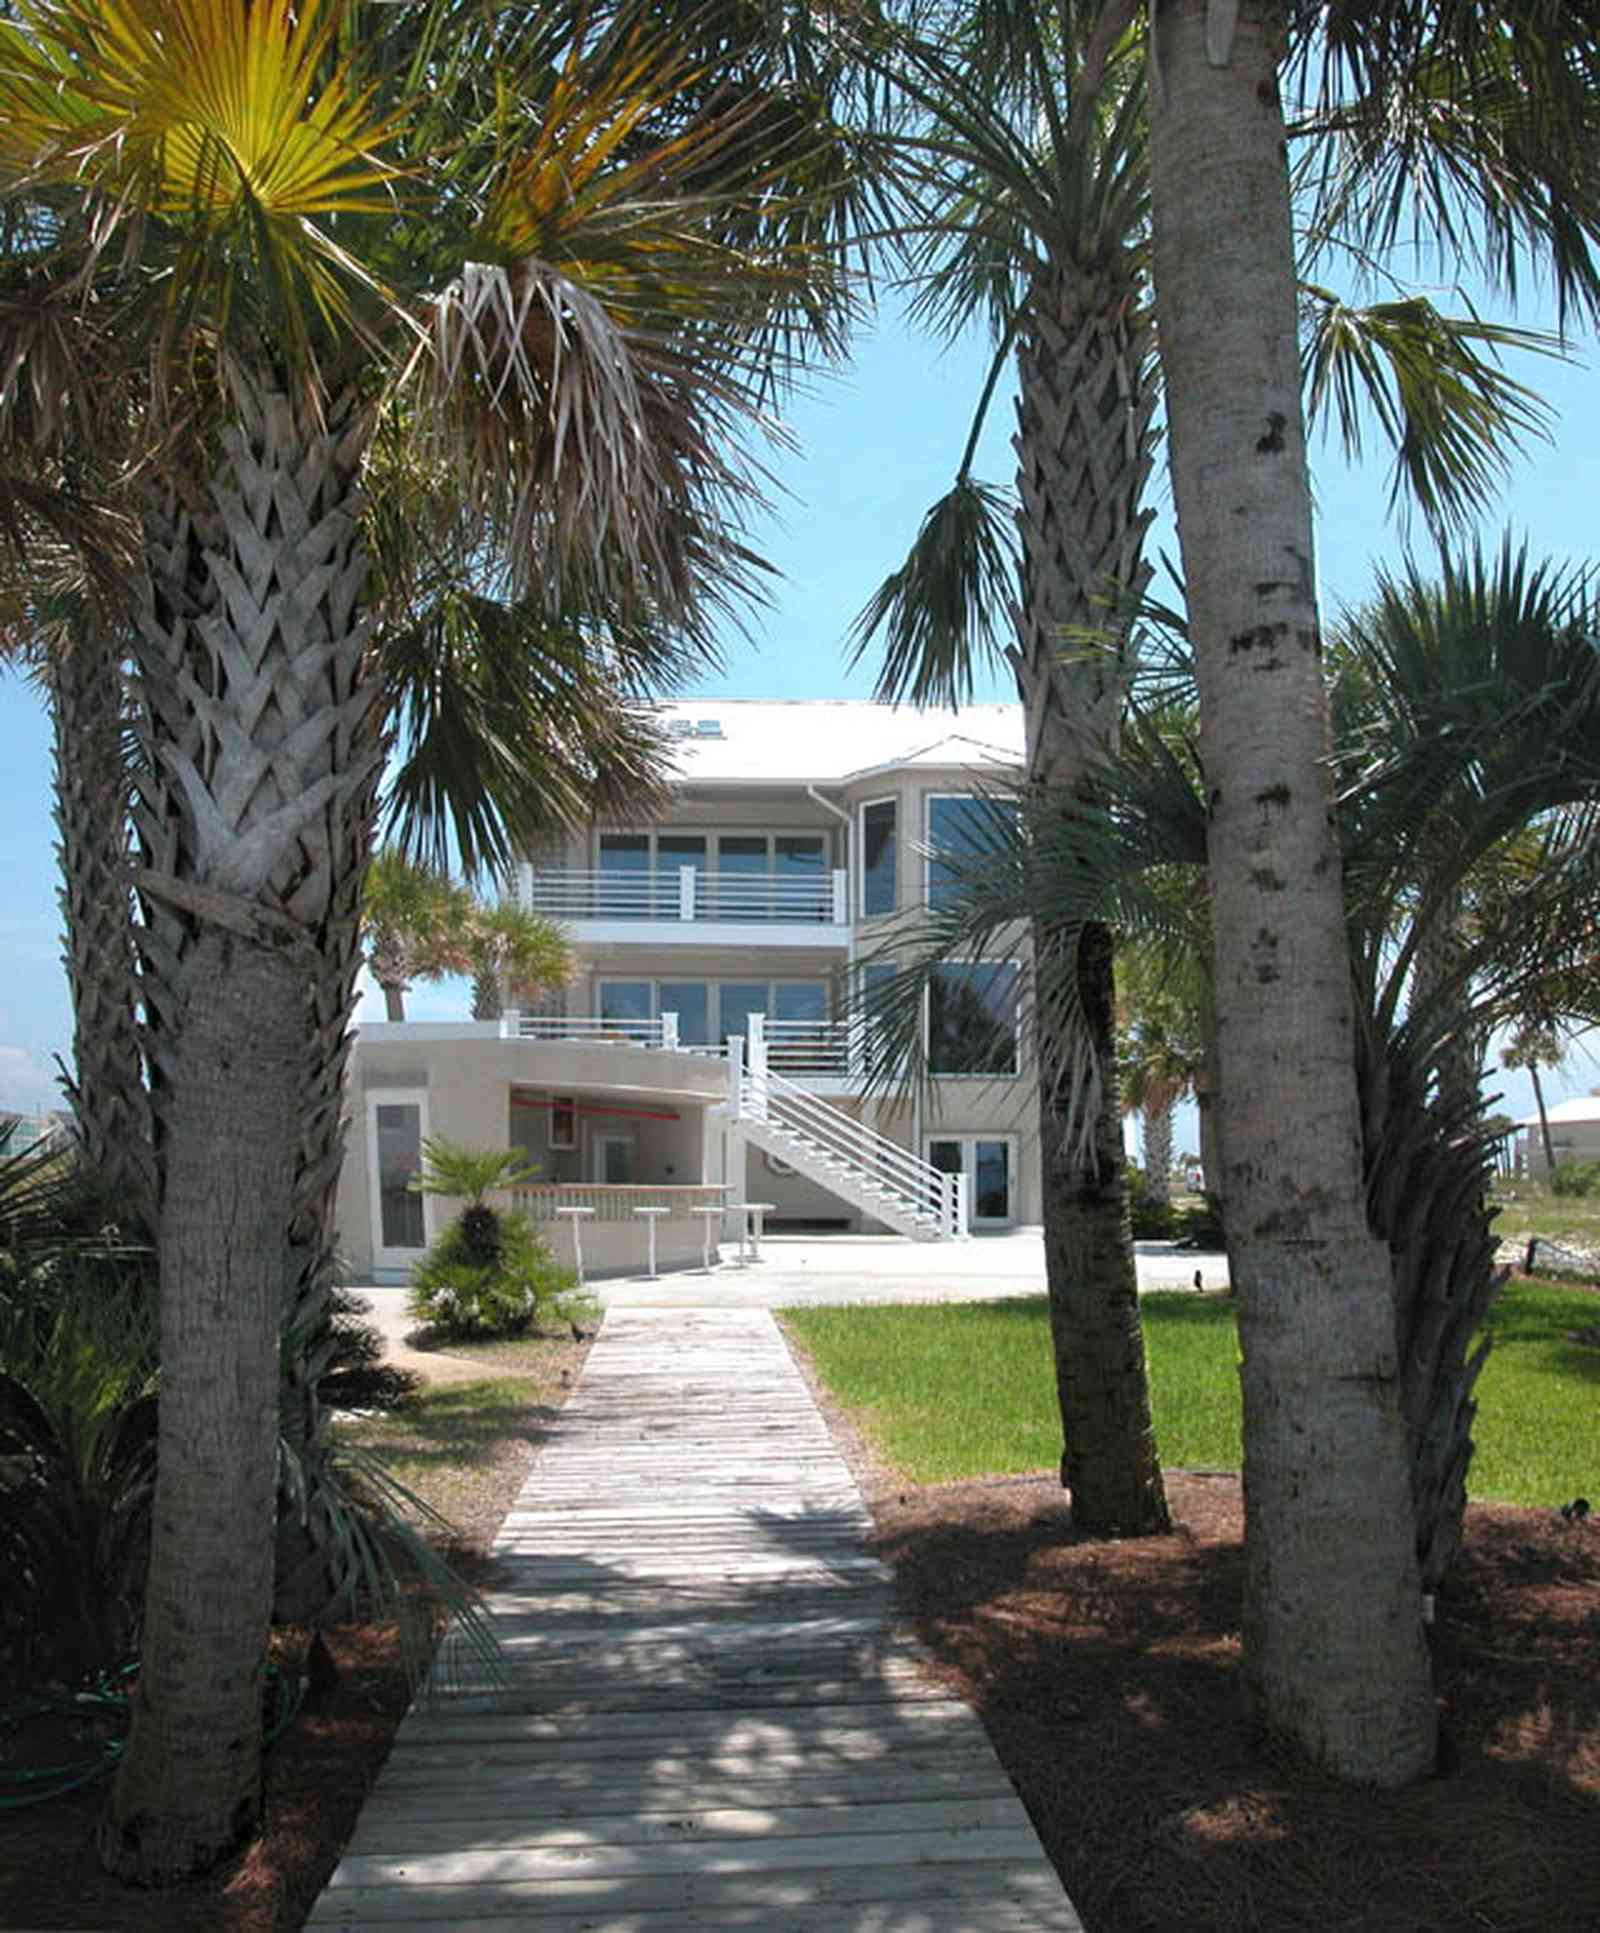 Navarre:-7332-Grand-Navarre-Blvd_05.jpg:  palm trees, cabana bar, beach house, dock, deck